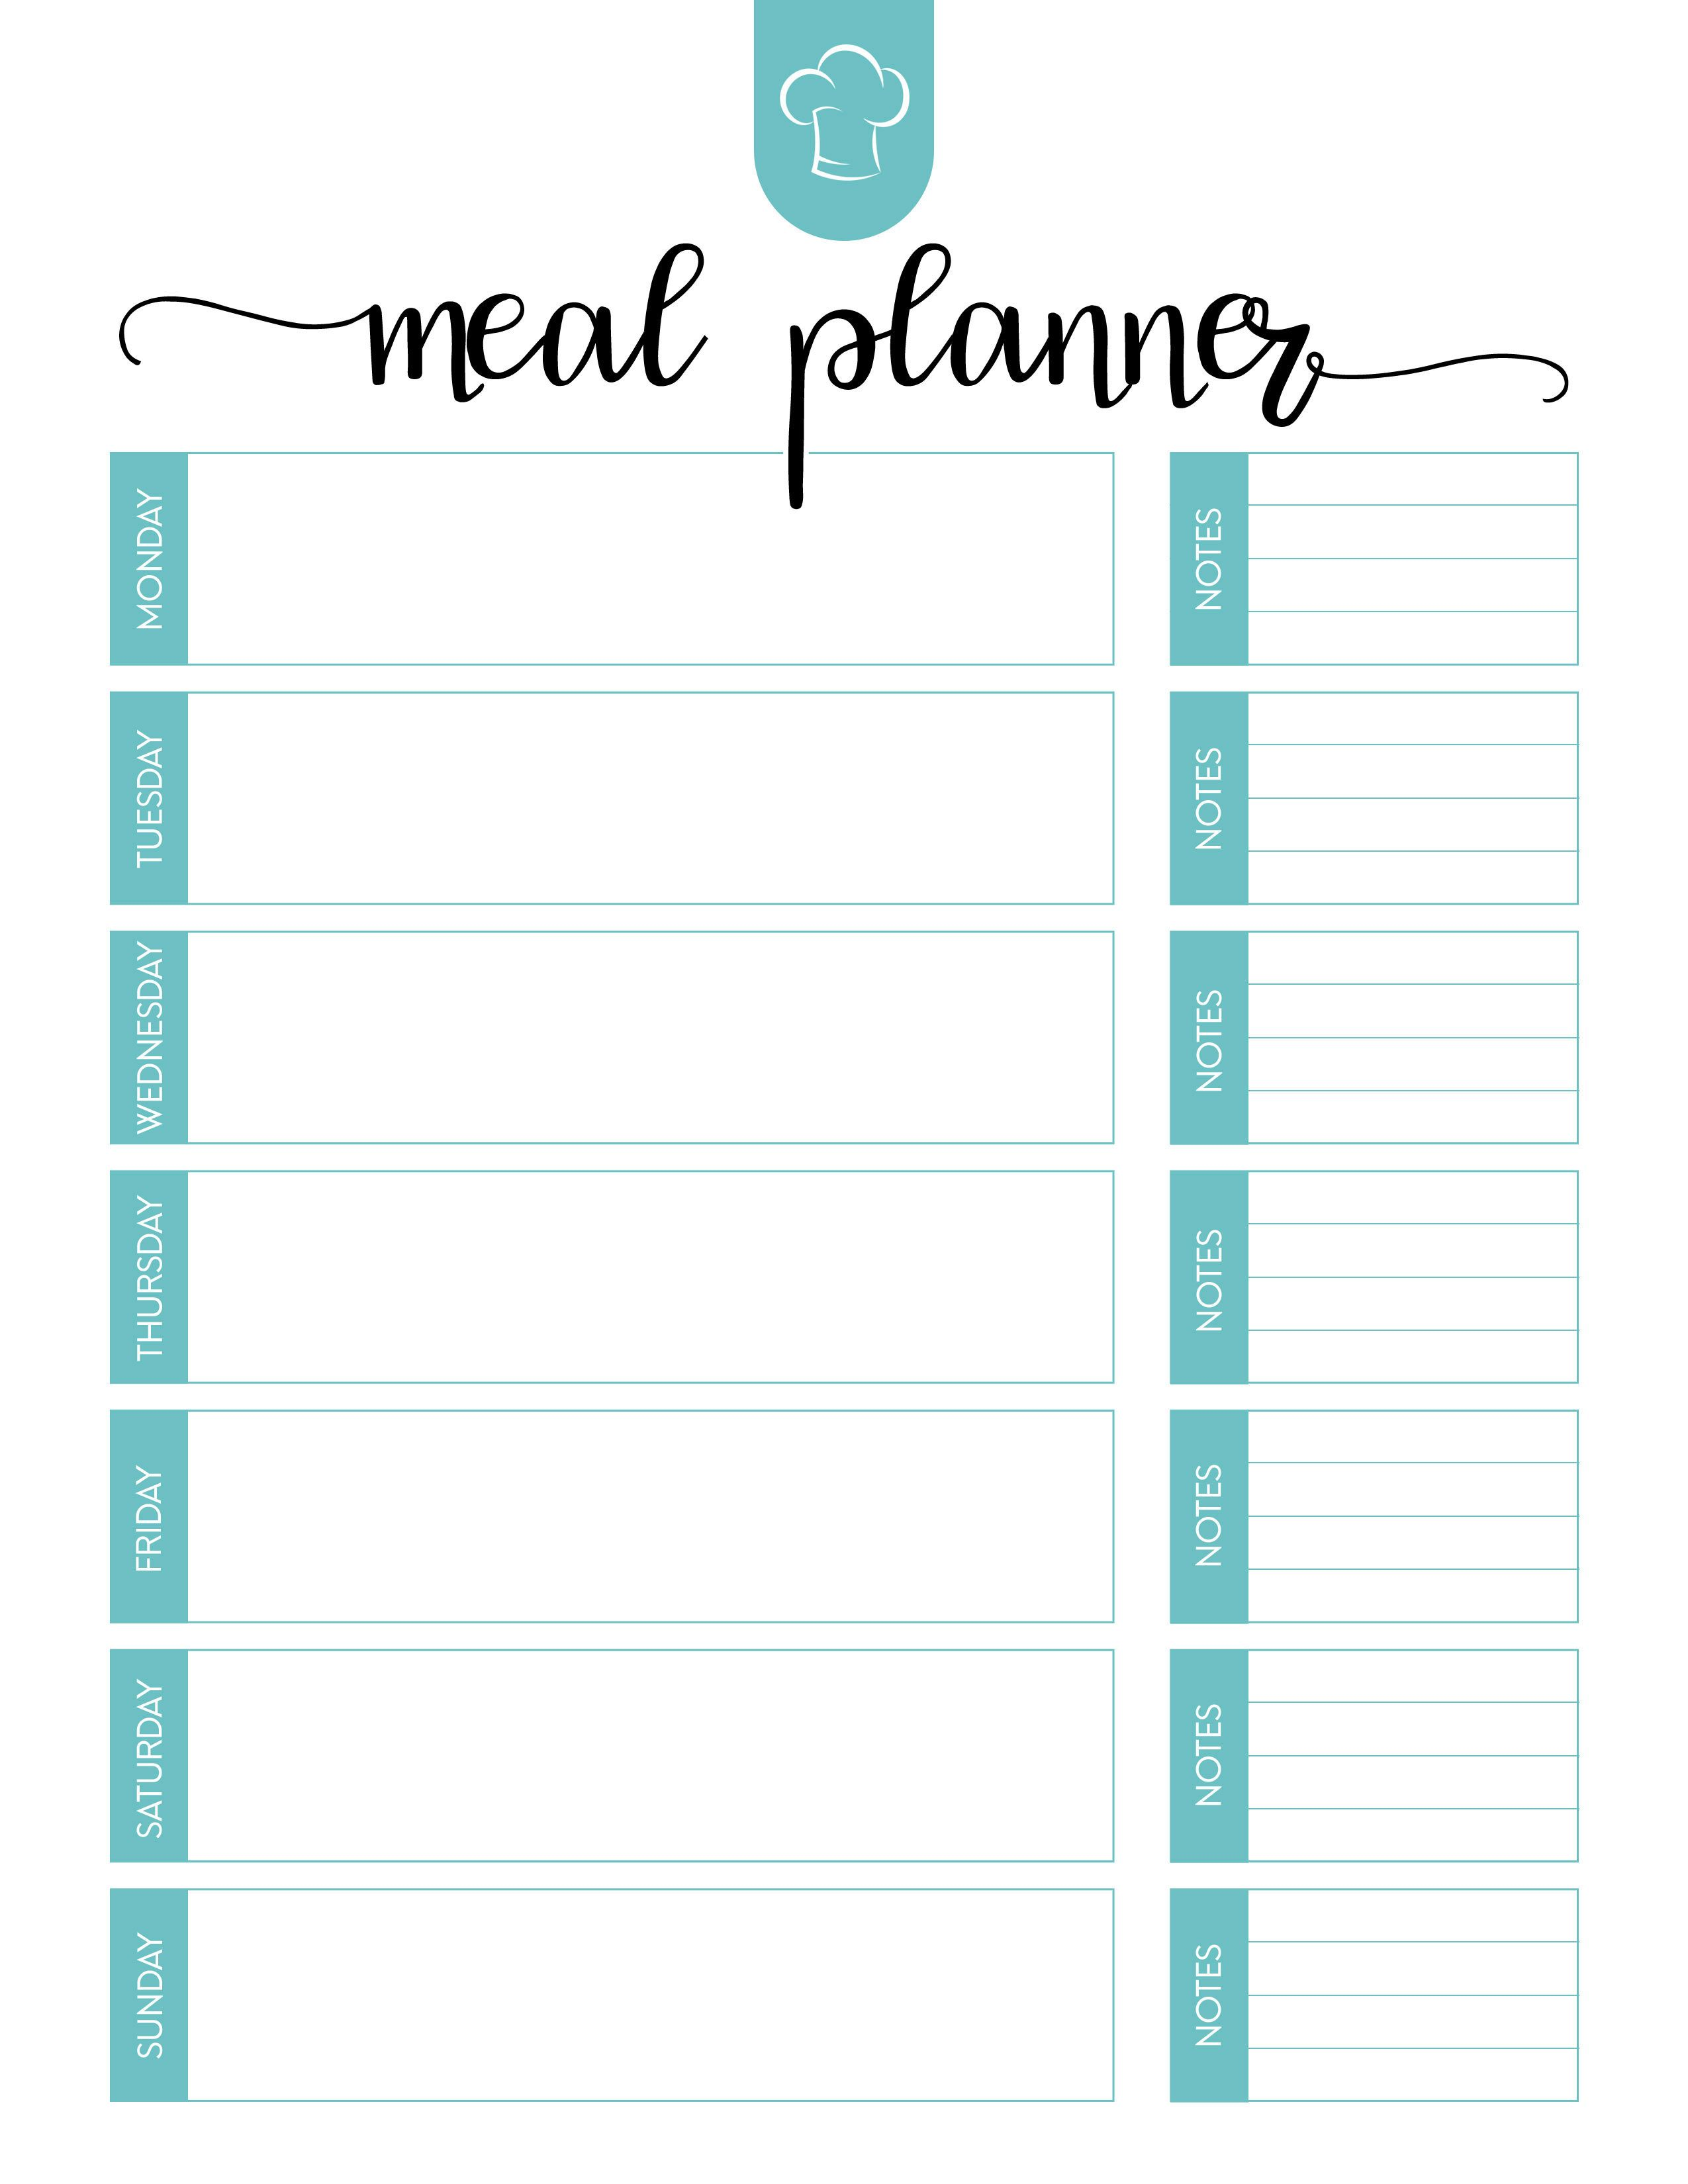 Weekly Free Meal Plan Template With Note  Worksheet Planner For Weight Los ExcelFull